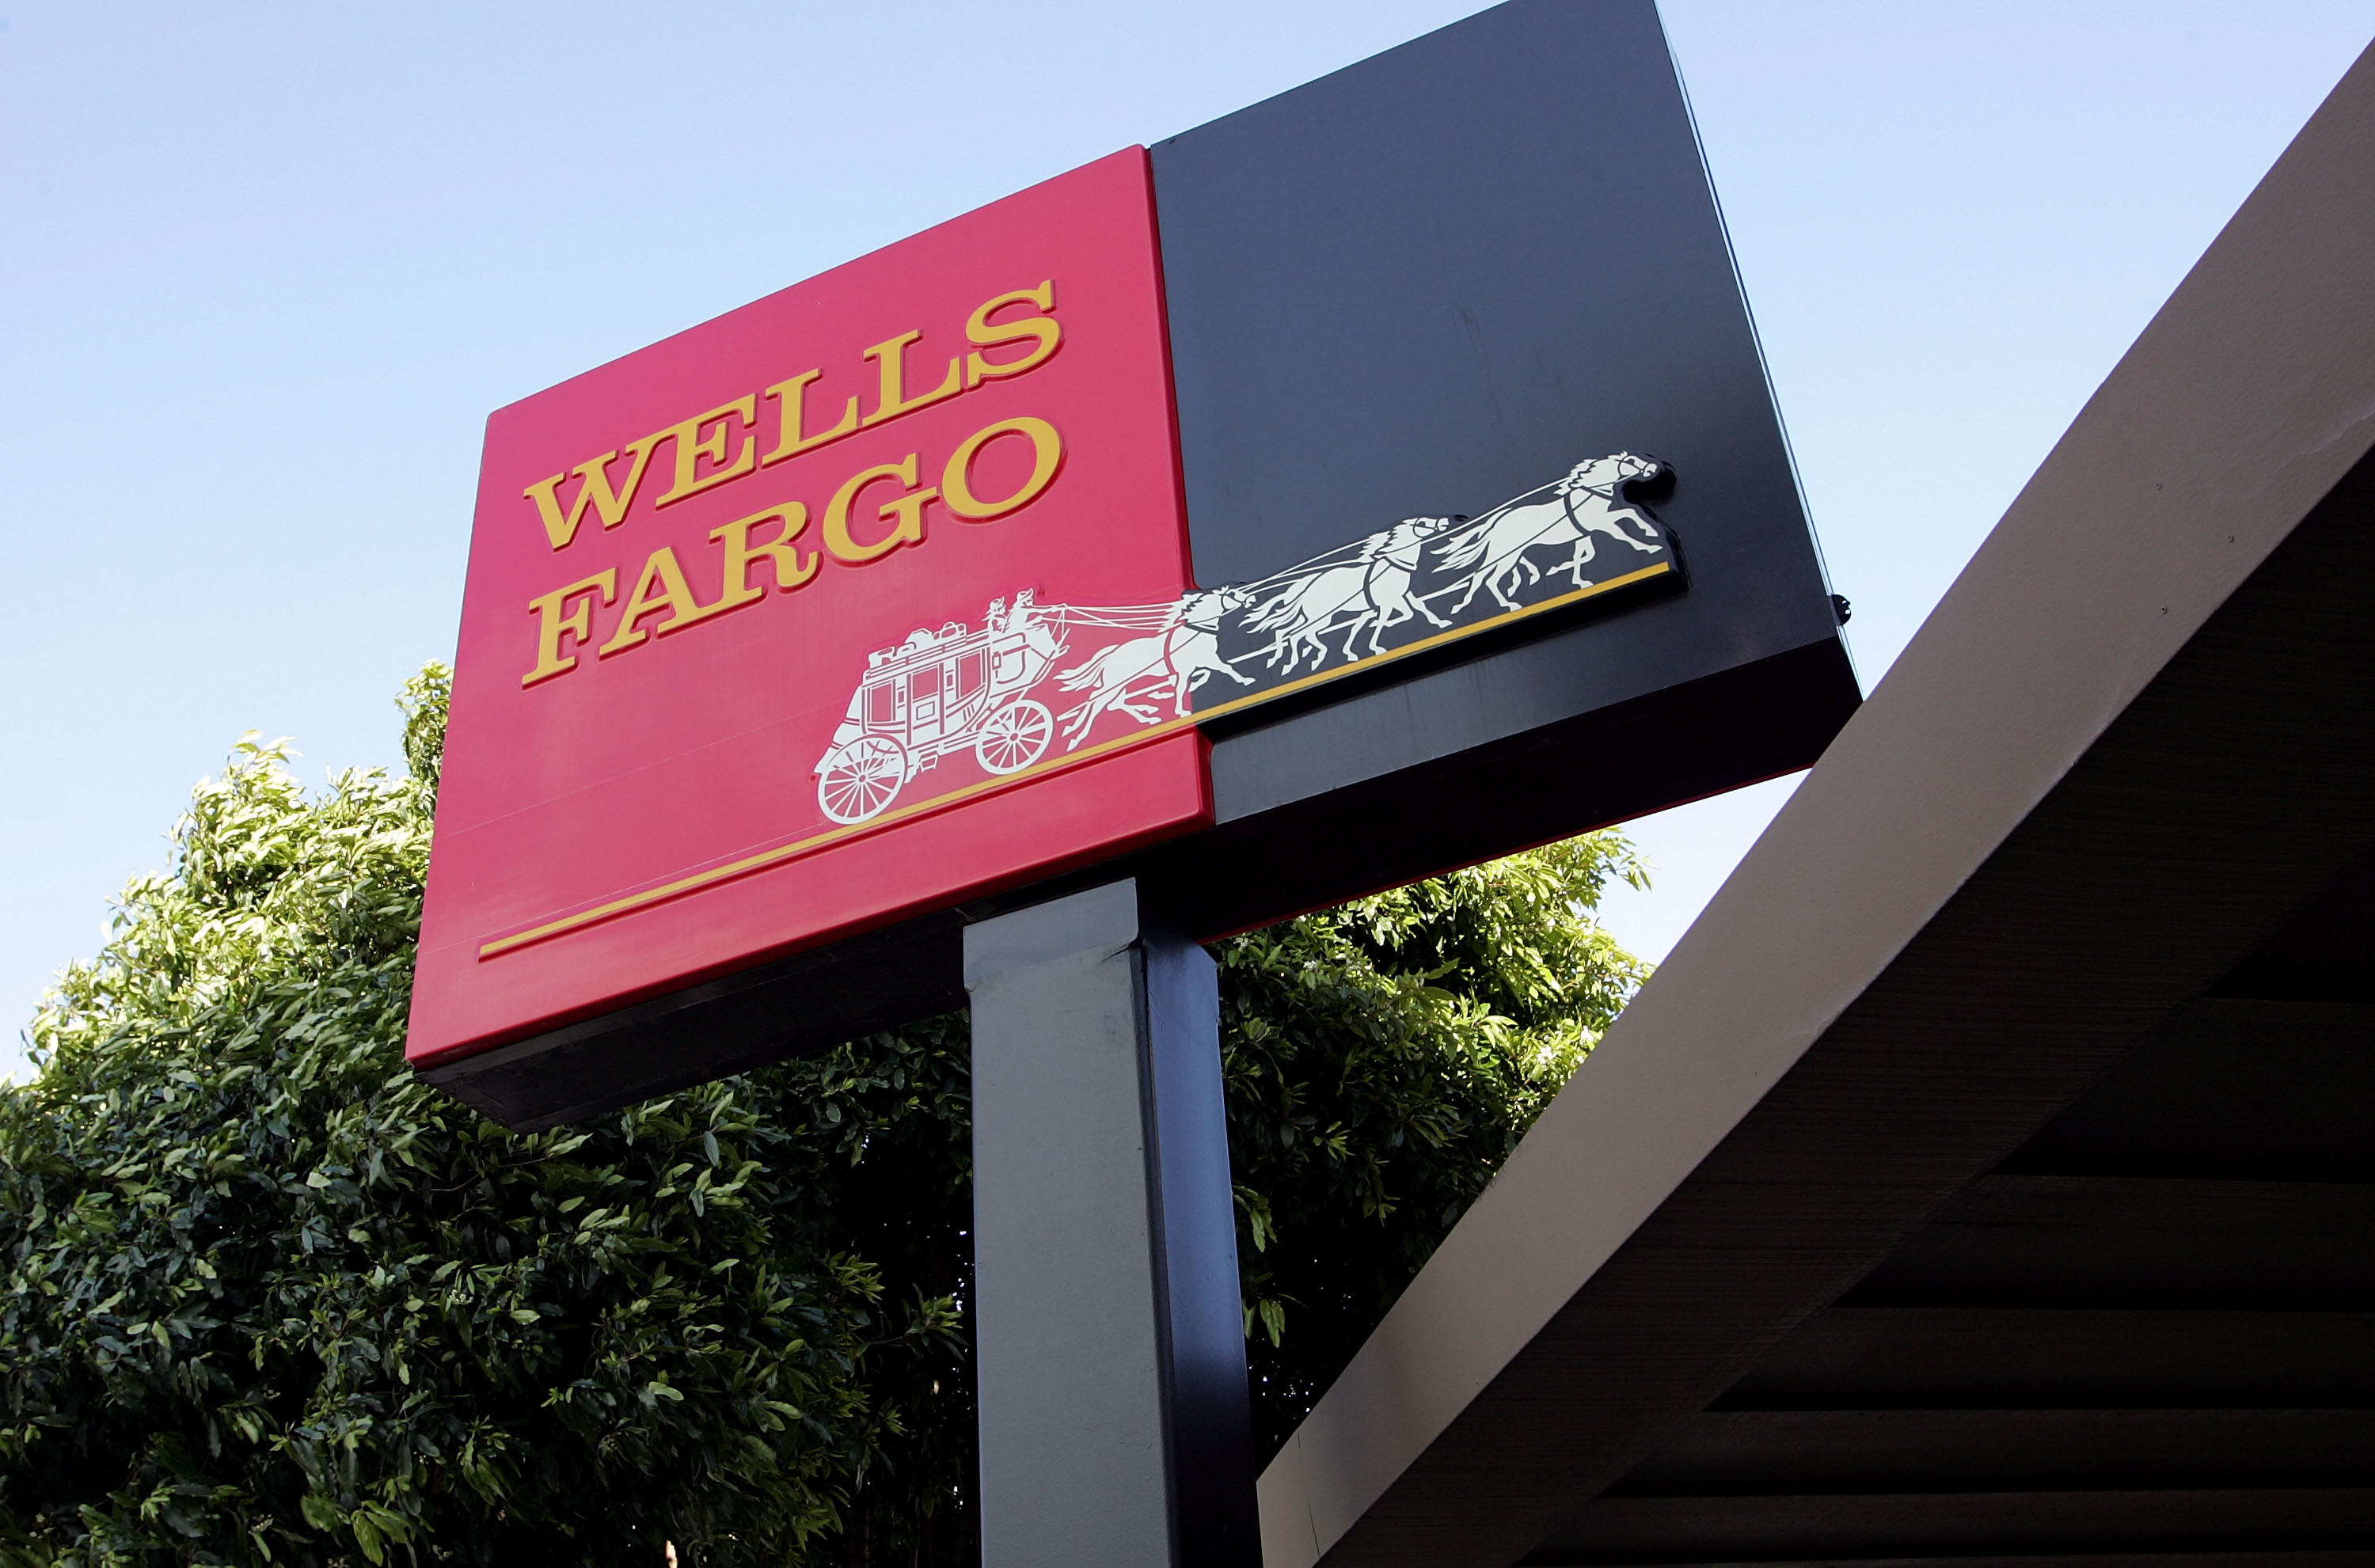 Account, loan, or card number. Enter one of your Wells Fargo numbers or the account number printed on your ATM /debit card (not your Personal Identification Number (PIN)).. Brokerage accounts: Please enter a W in front of your account number. Credit cards: Enter the account number that is printed on your credit card and credit card statement.*.